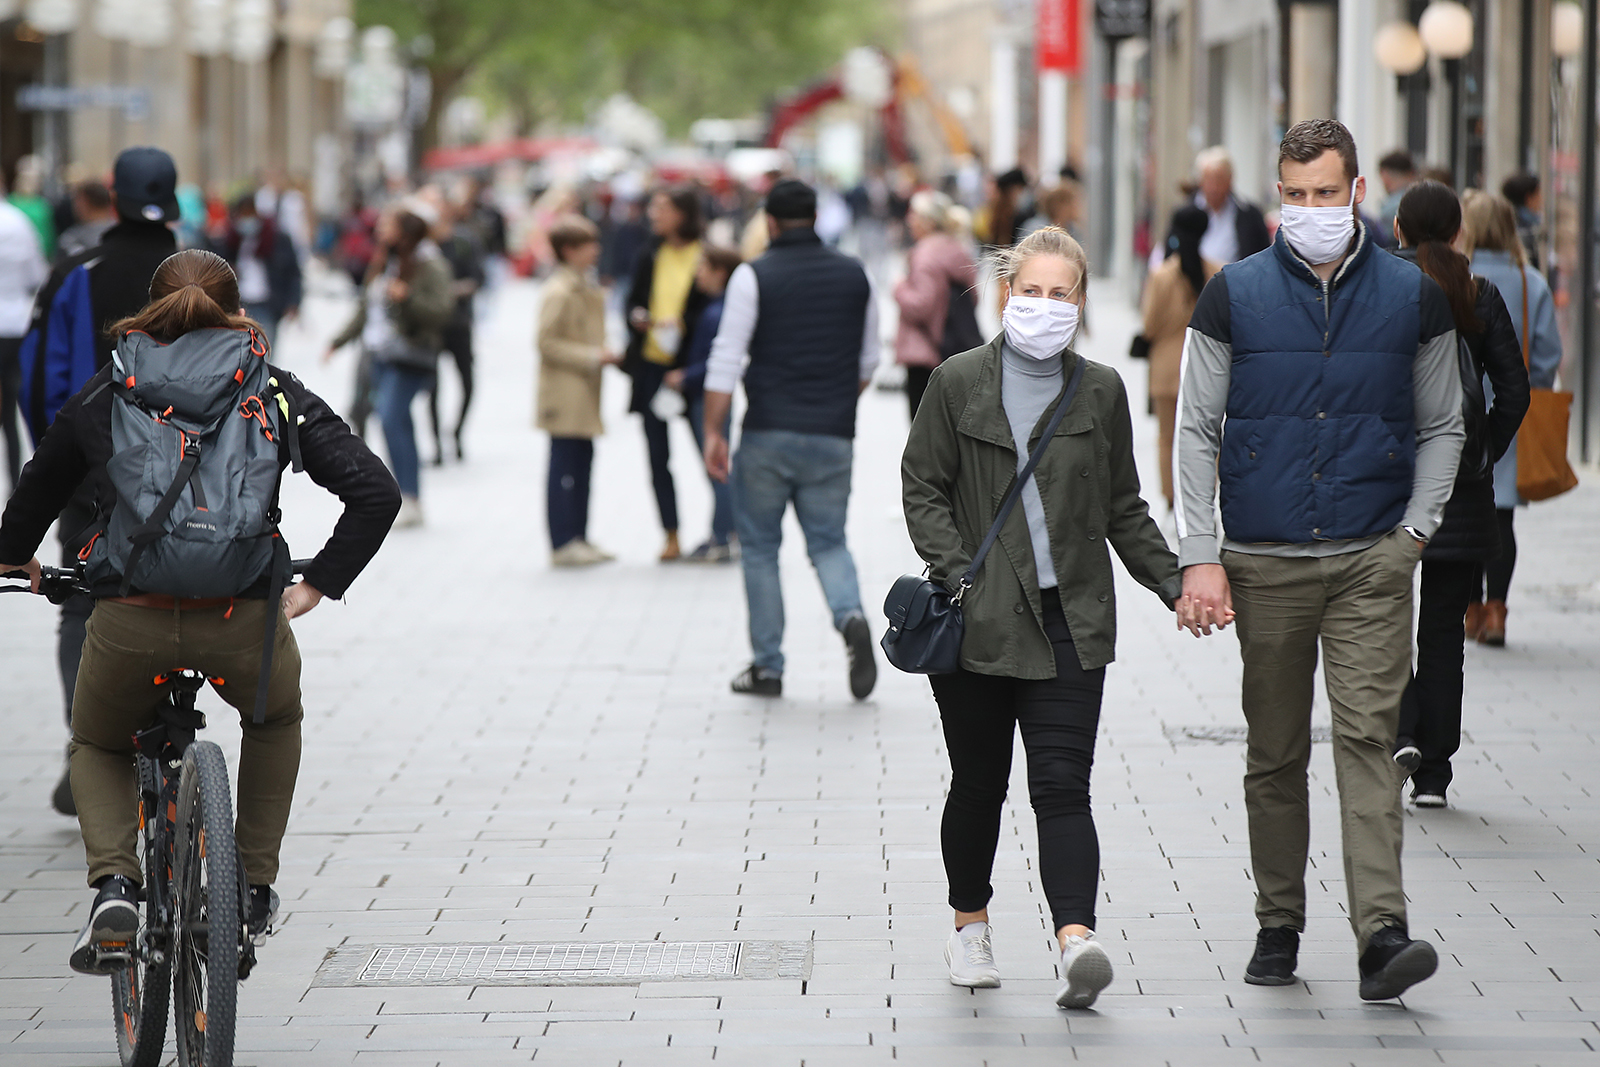 People wearing protective face masks walk on the main shopping street in Munich City during the coronavirus crisis on April 30, in Munich, Germany.